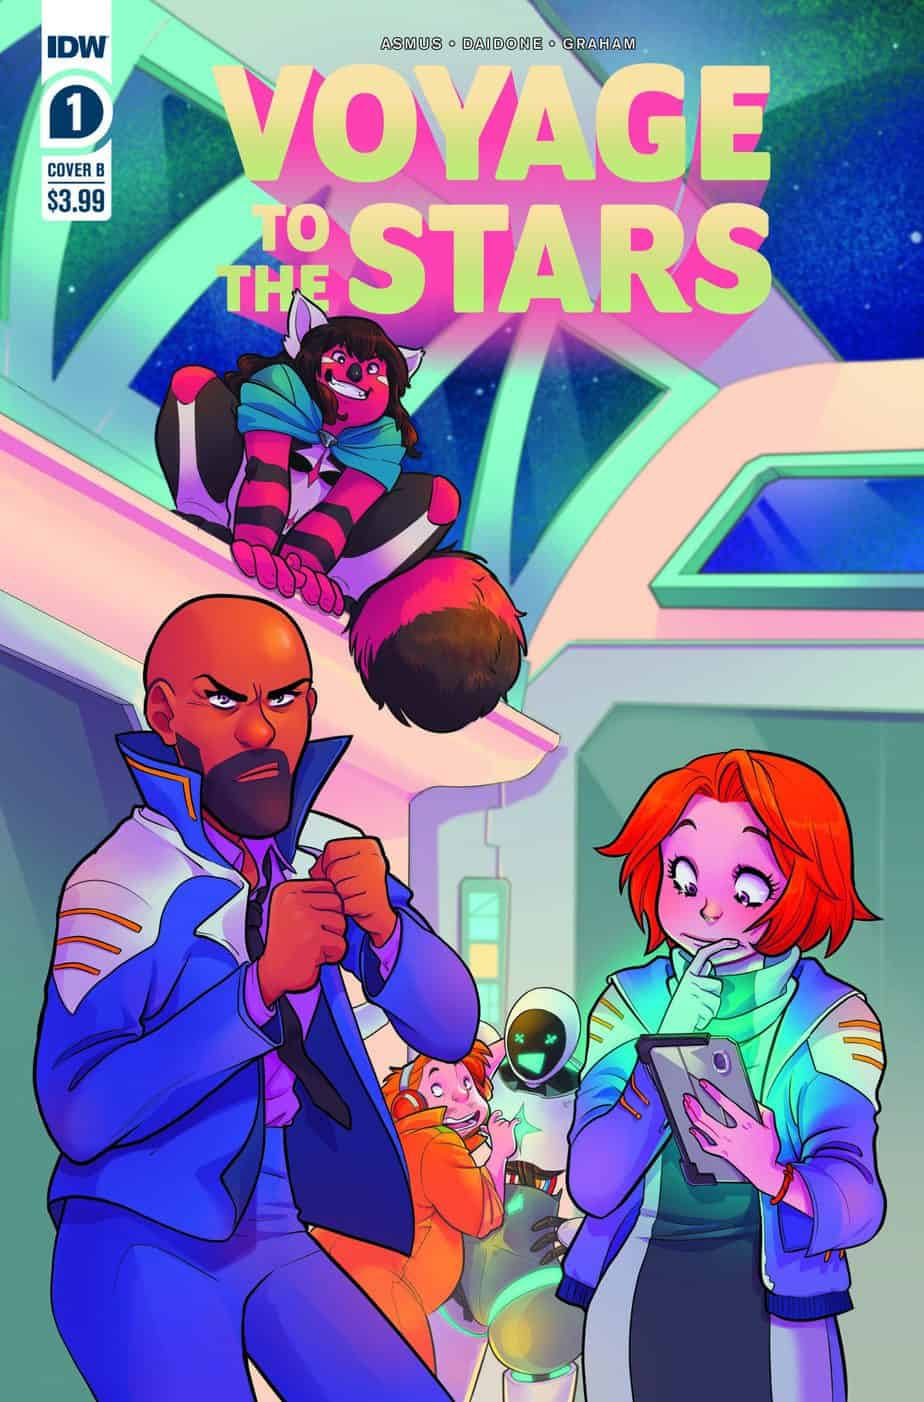 VOYAGE TO THE STARS #1 - Cover B